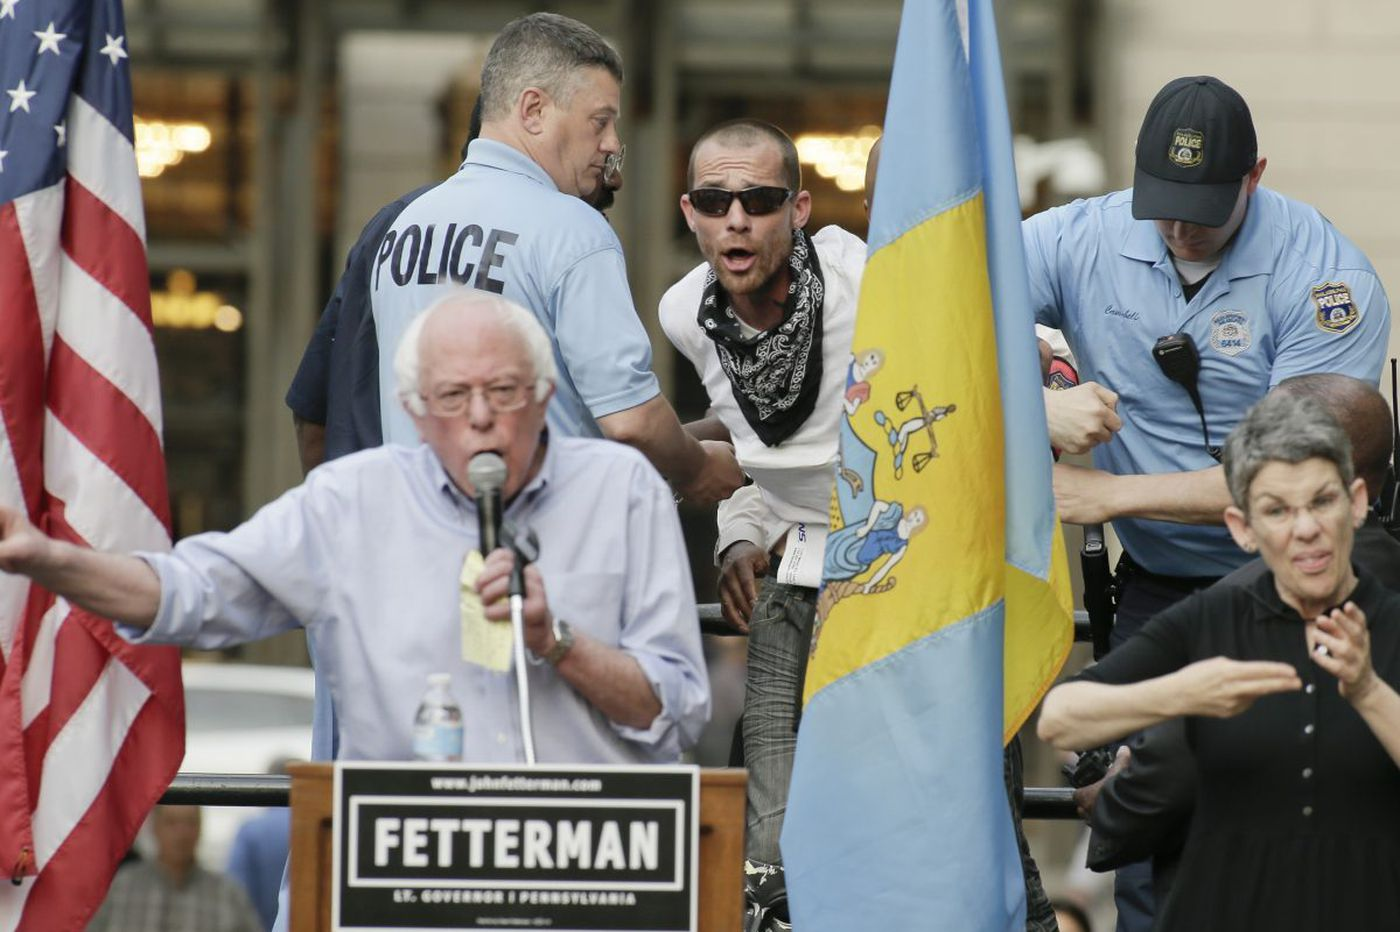 Protester detained by police at City Hall as Bernie Sanders stumps for Dems in Philly